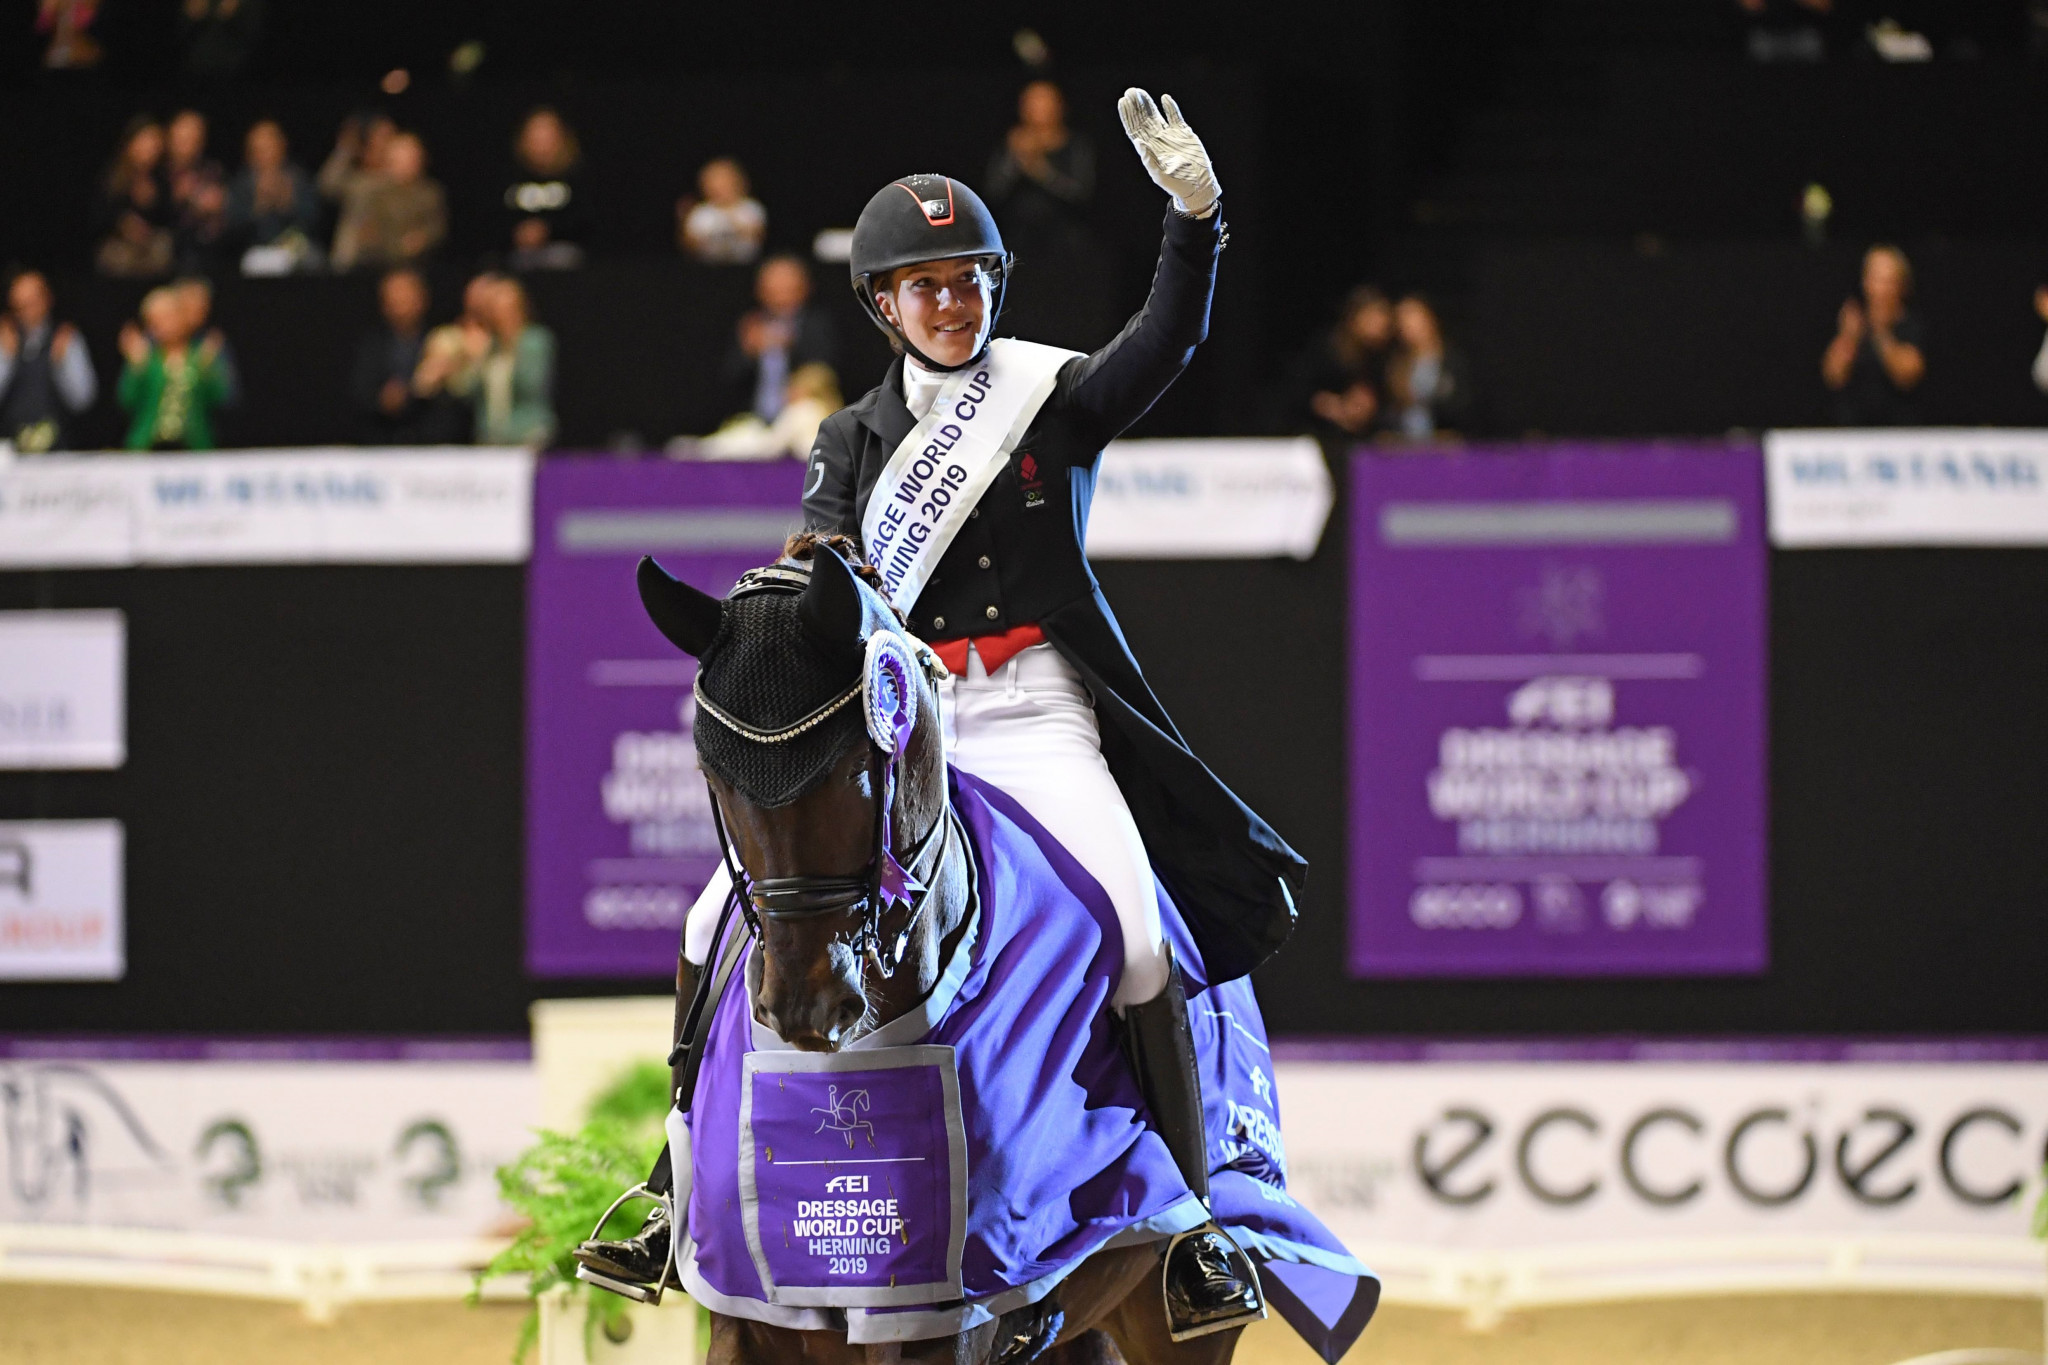 Home favourite Dufour triumphs at FEI Dressage World Cup Western European League opener in Herning